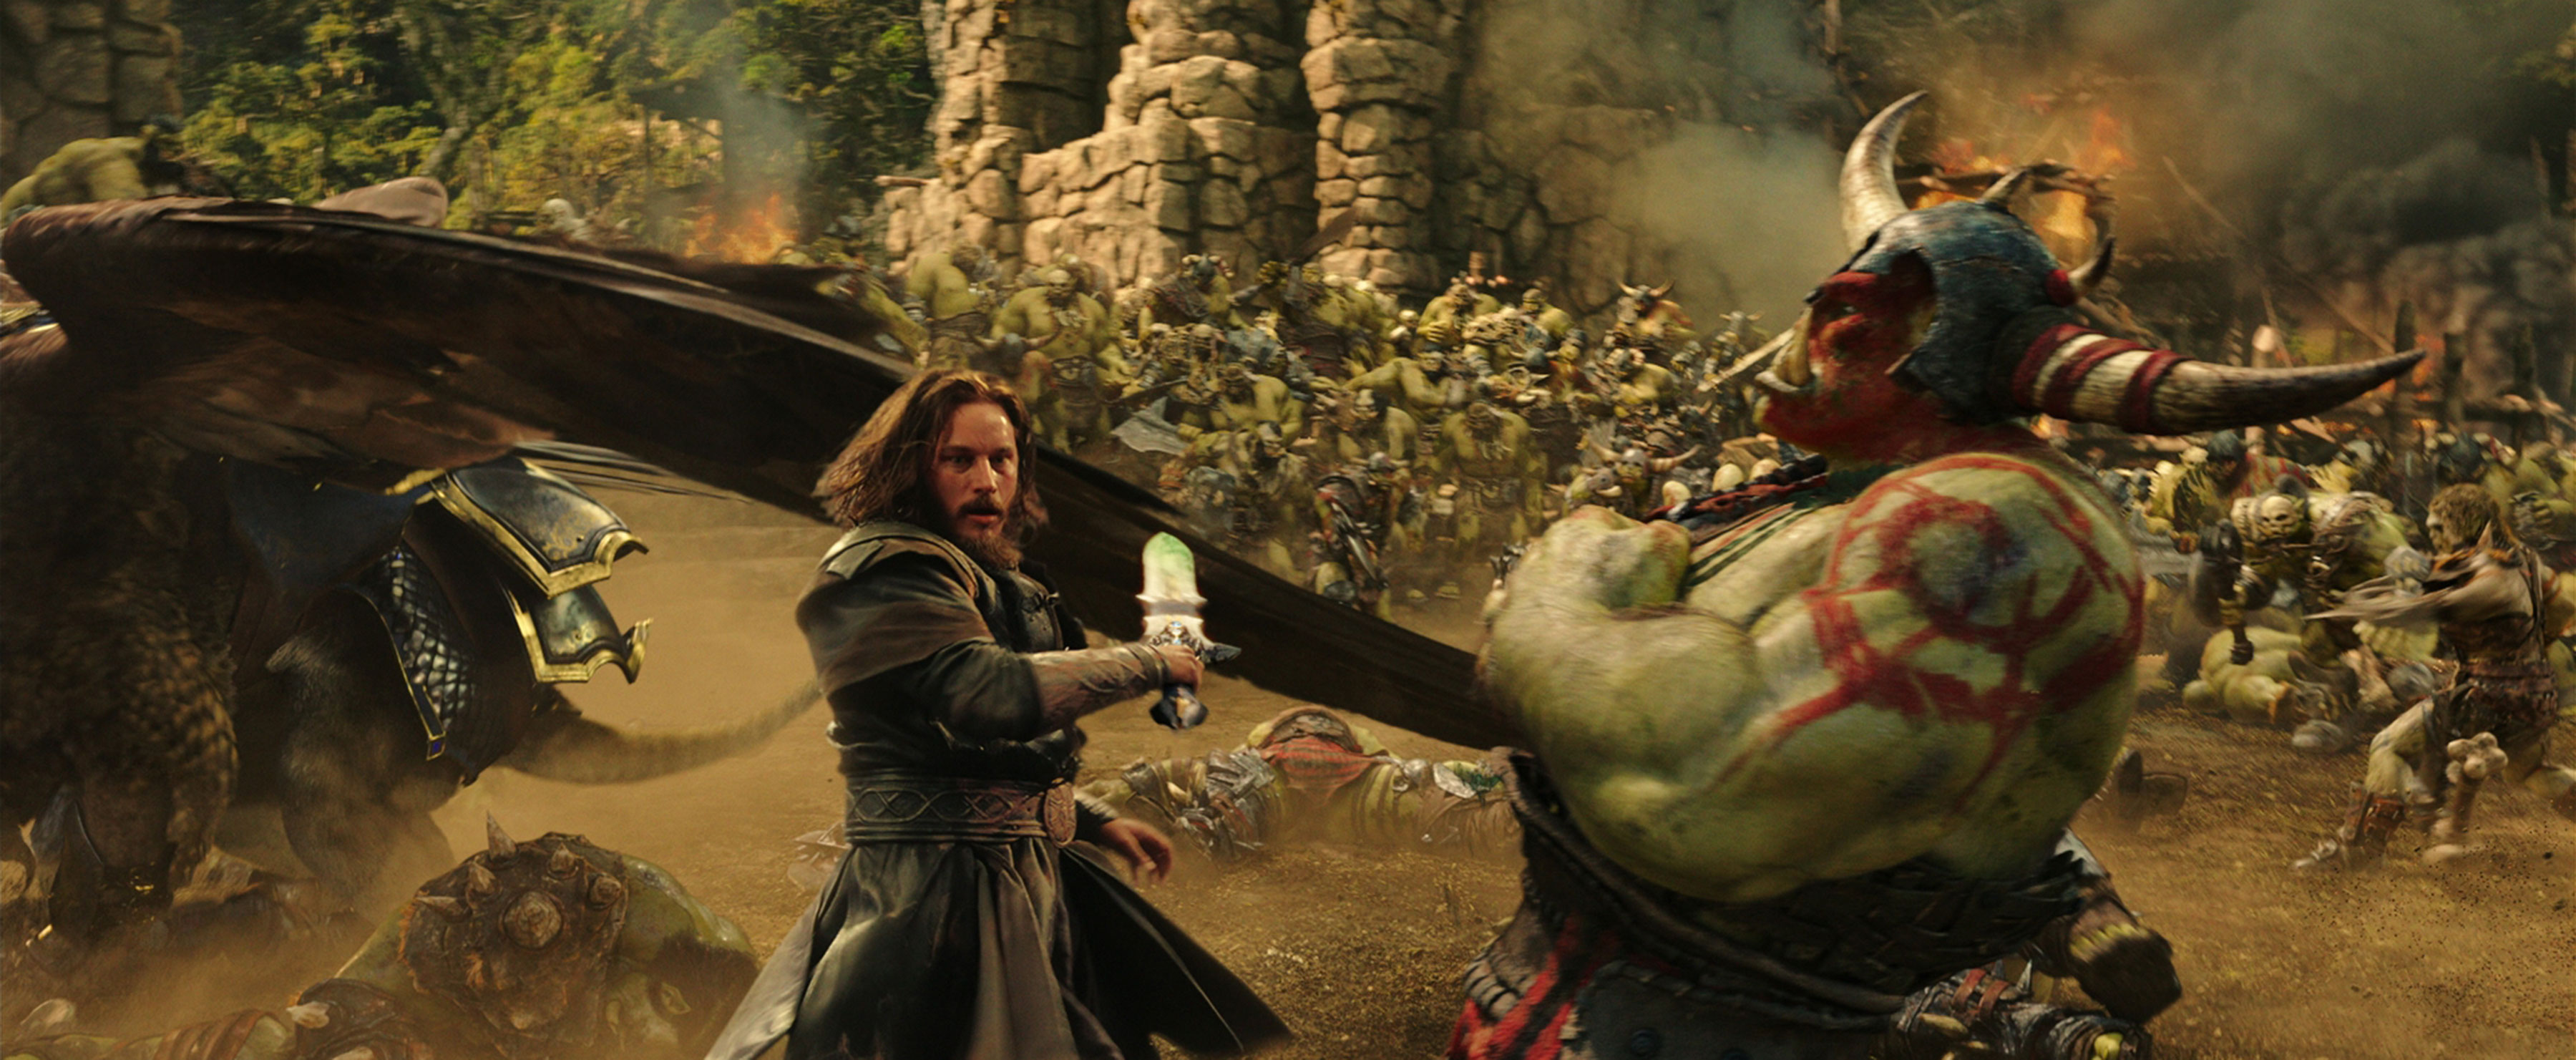 Can 'Warcraft' break the curse of the video game movie?